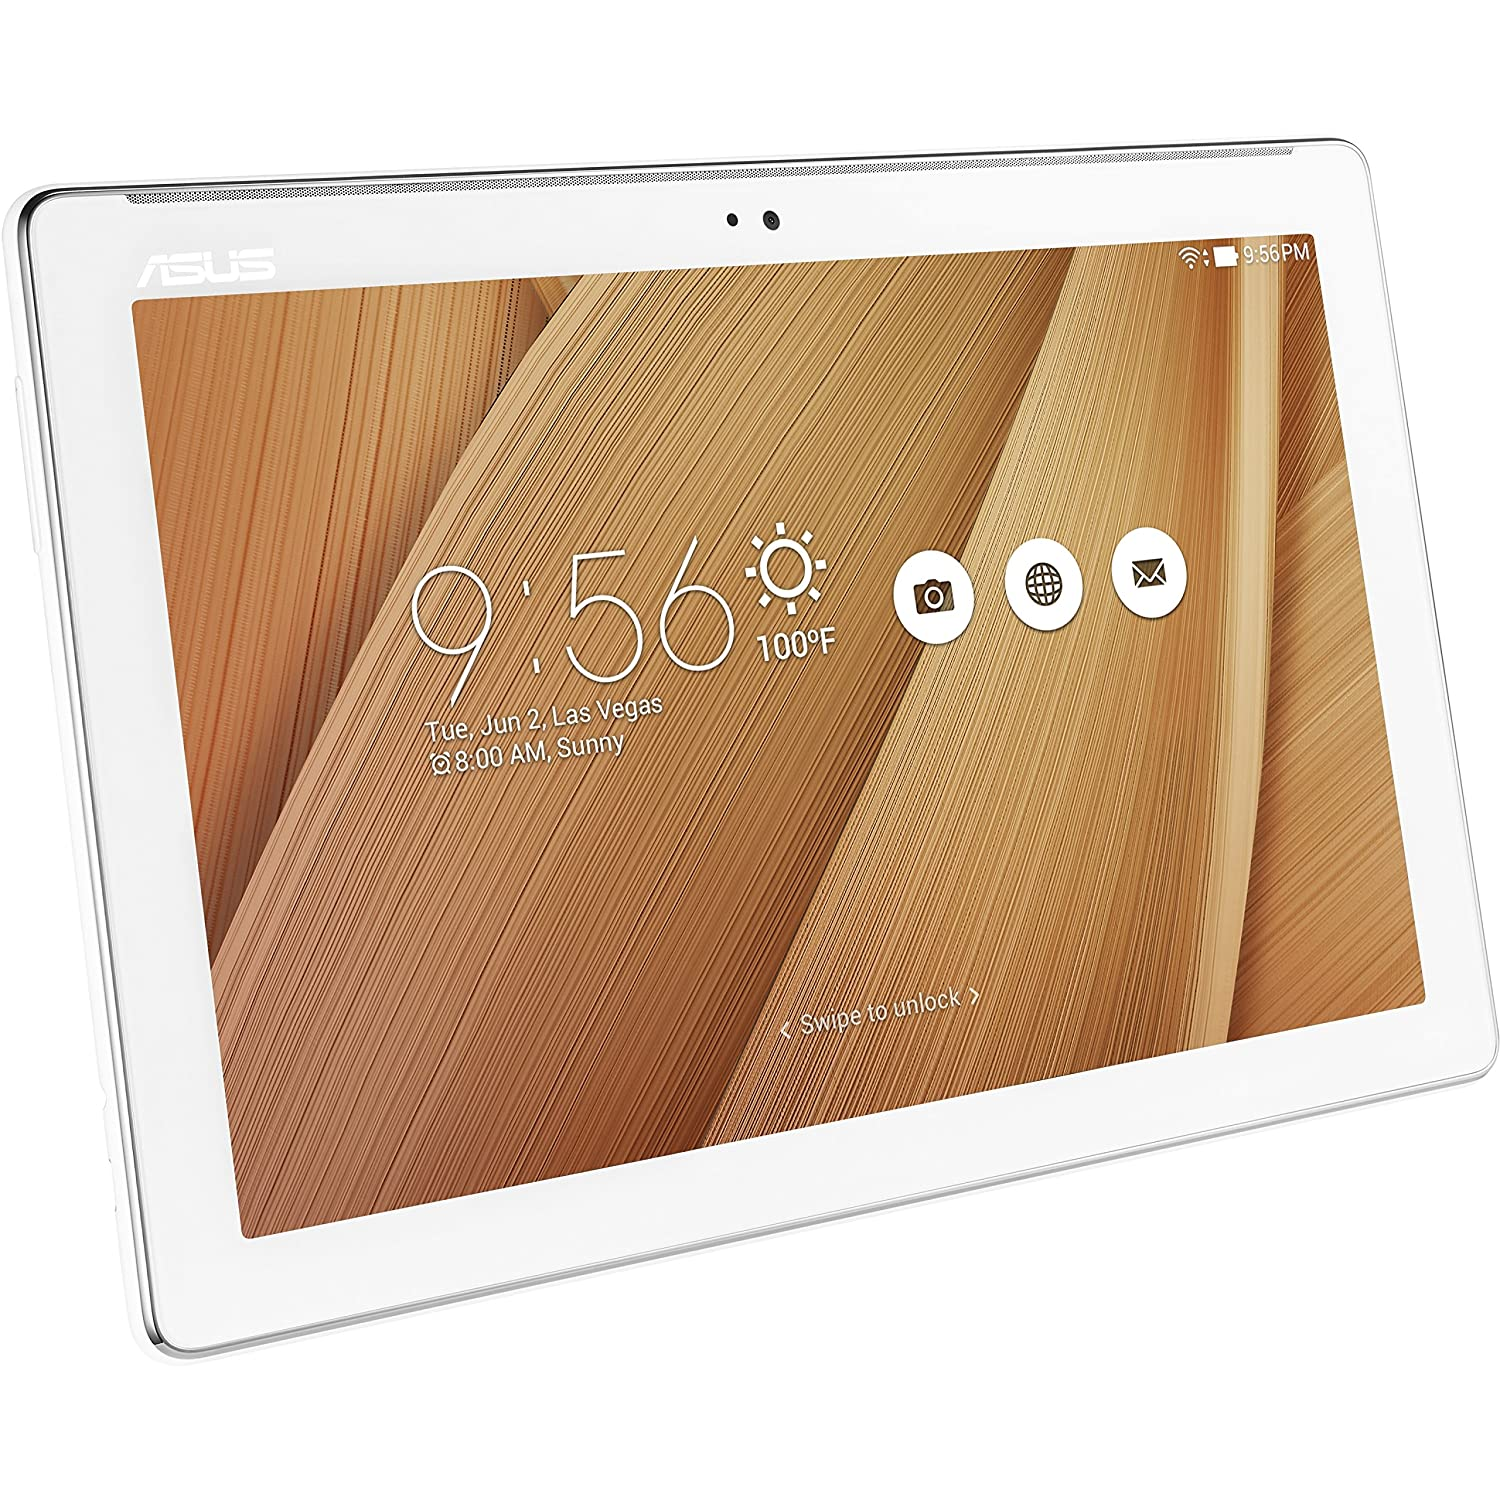 ASUS ZenPad 10 Rose Gold 10.1-inch Android Tablet [Z300M] 2MP Front / 5MP Rear PixelMaster Camera, WXGA Touchscreen, 2GB DDR3L, Quad Core 1.3GHz Processor, 802.11a/b/g/n, Bluetooth 4.0